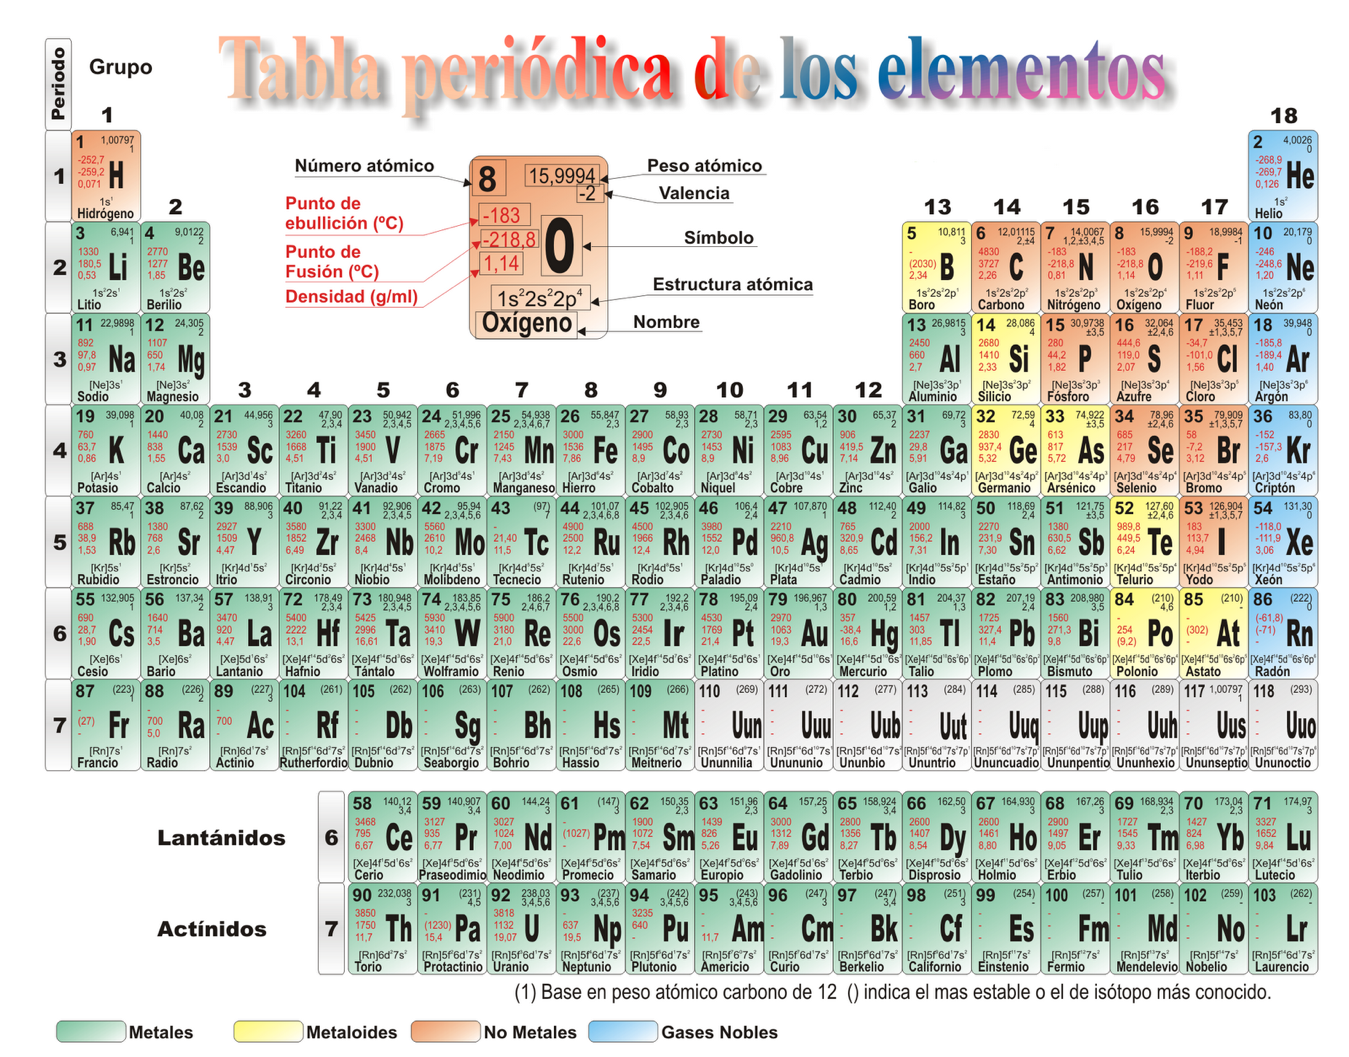 Tabla periodica 2017 pdf gallery periodic table and sample with imagenes de la tabla periodica pdftabla periodica de los elementos cdr imagenes de la tabla periodica urtaz Gallery